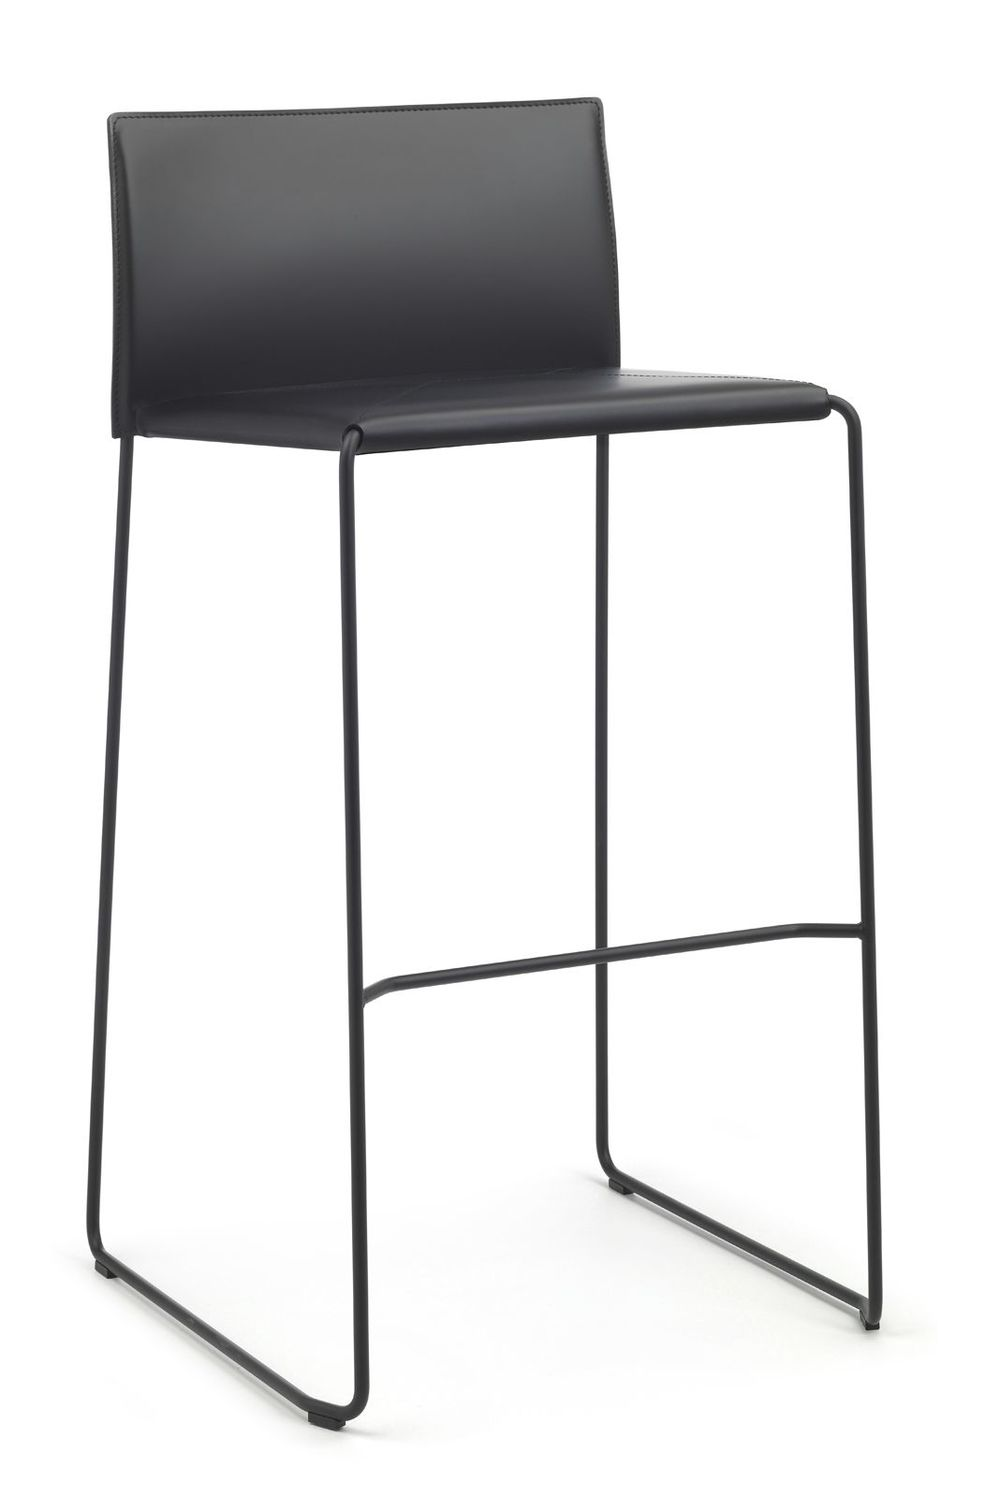 modern-bar-stools-Italian-furniture-large (22).jpg